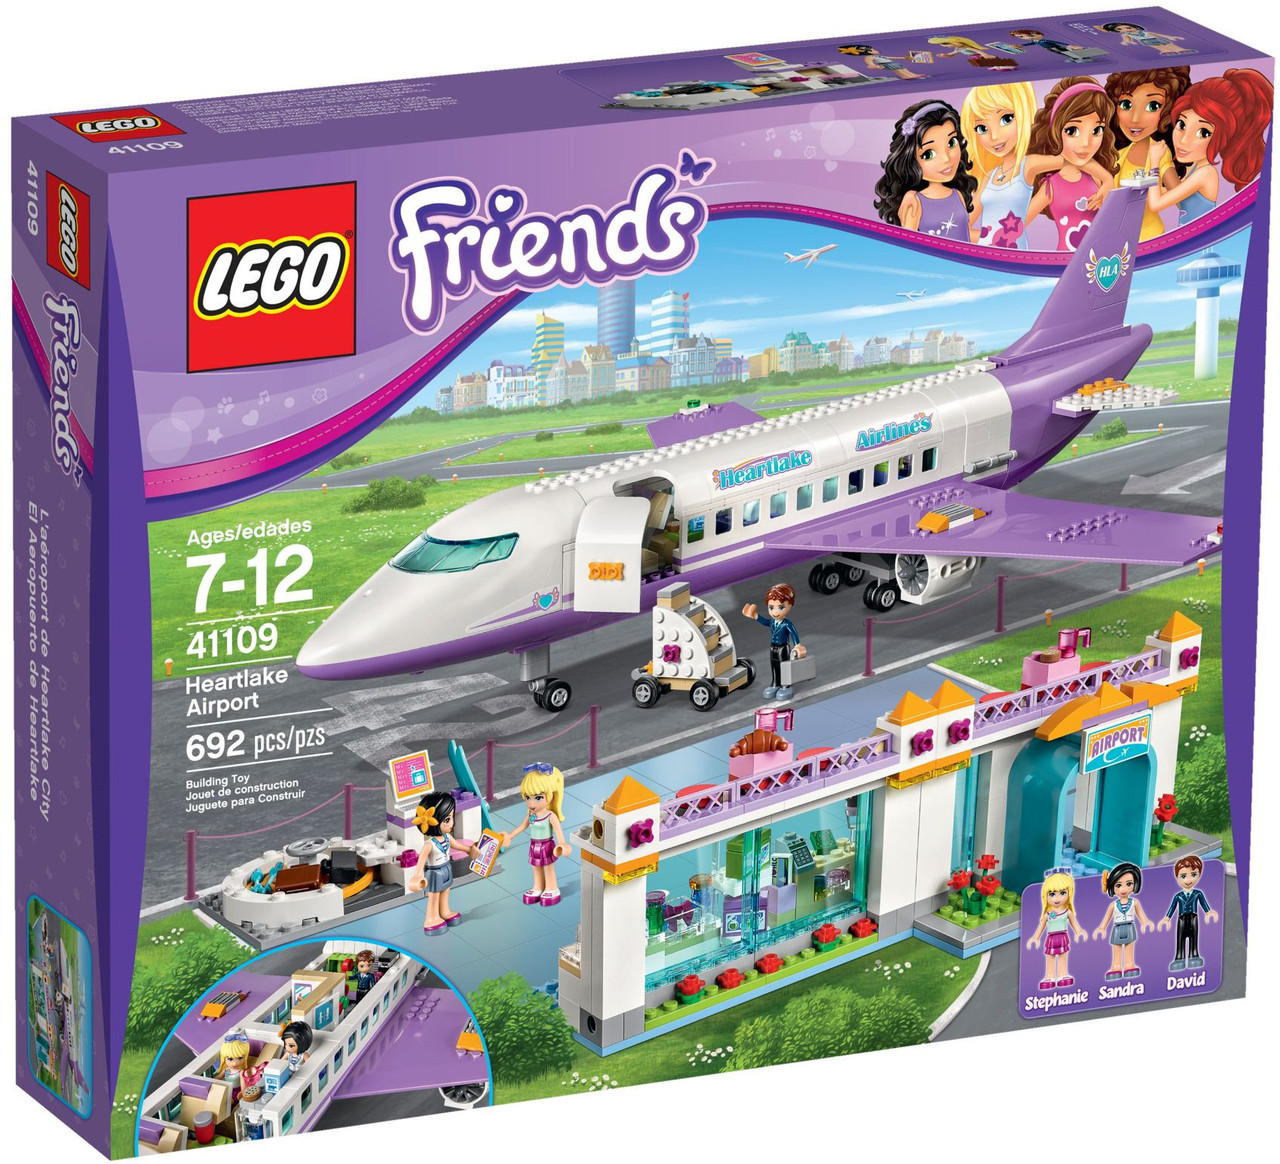 Lego Friends Аэропорт в Хартлейке 41109